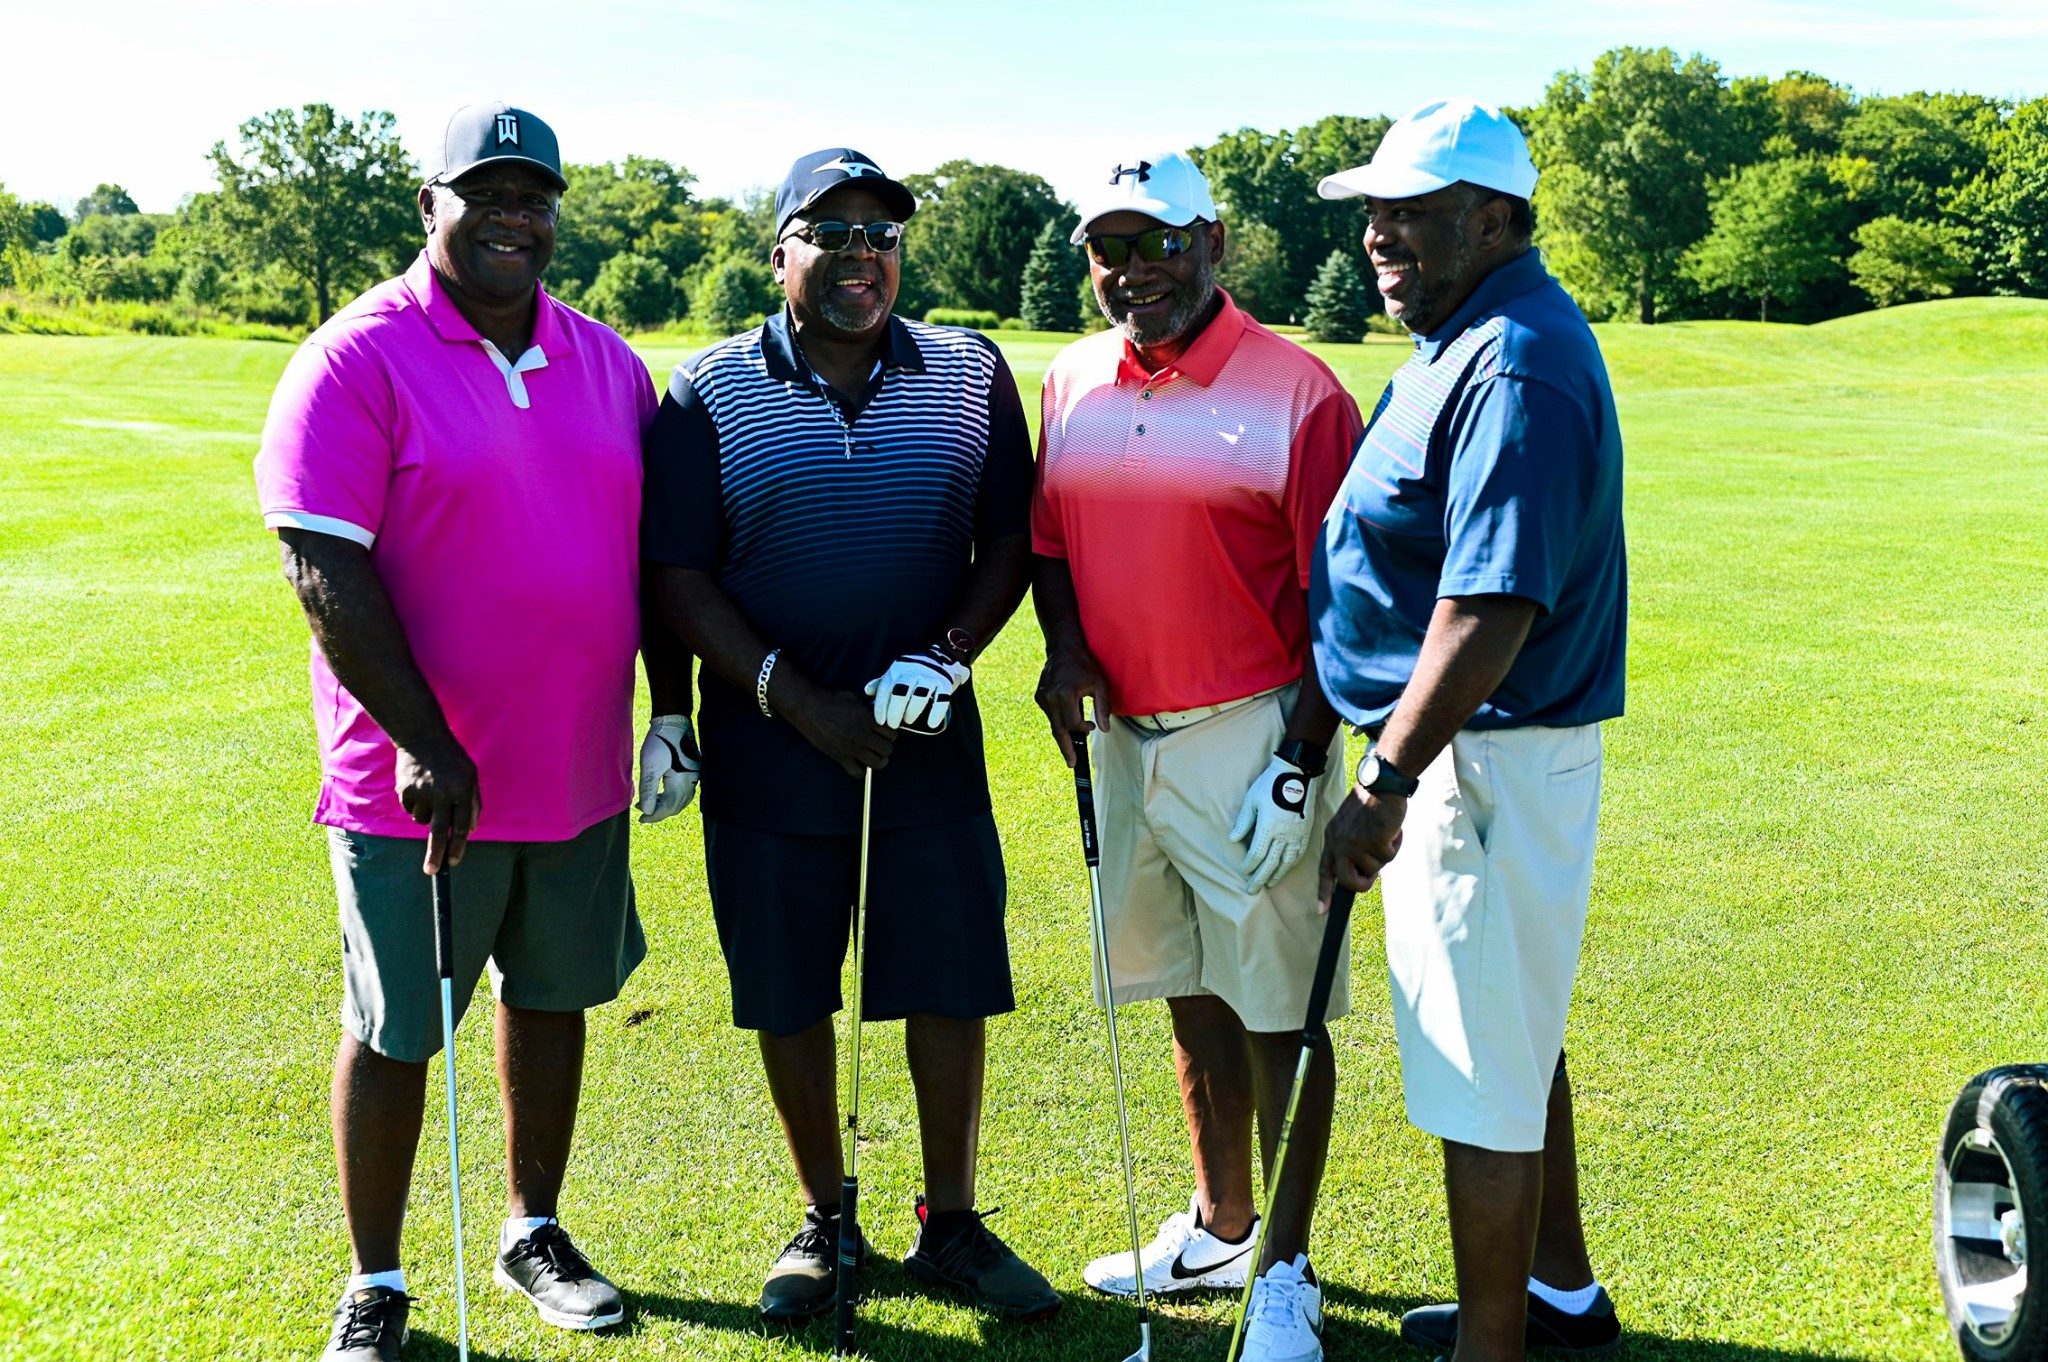 Highlights from the FHL Charitable Golf Classic to Fight Hunger